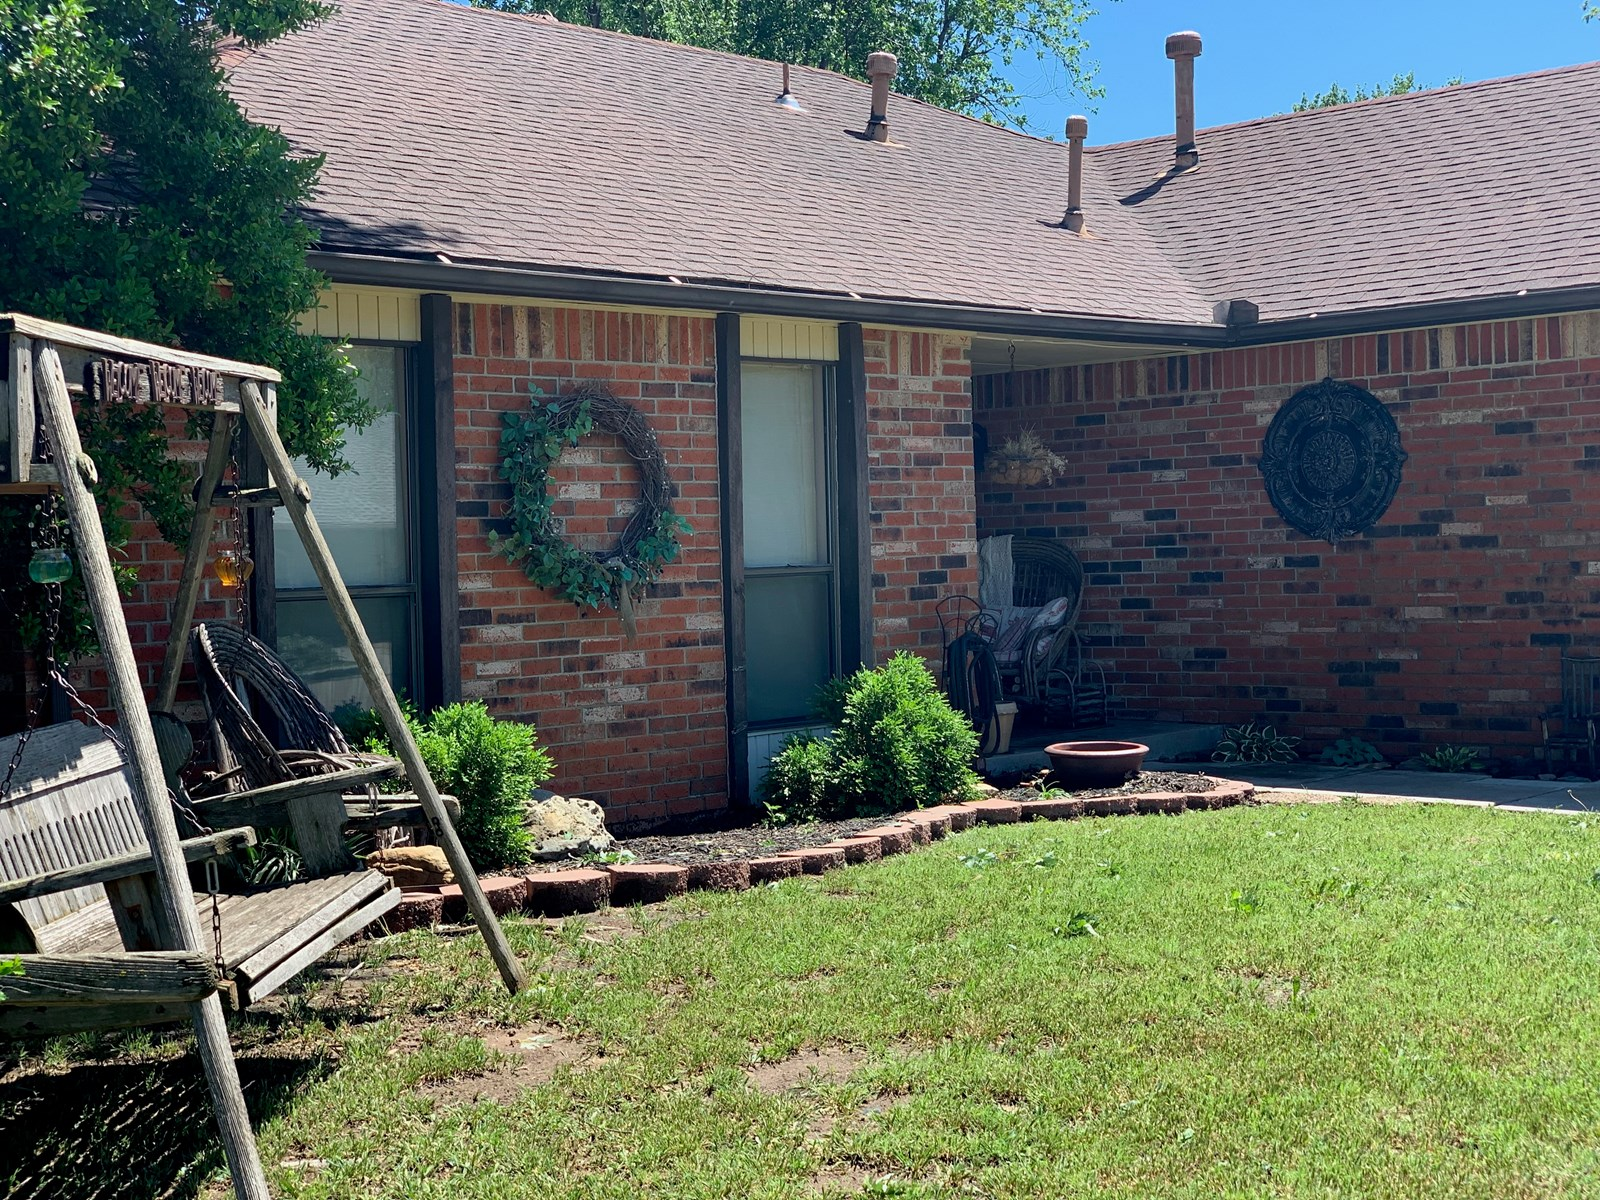 PONCA CITY HOME FOR SALE BEAUTIFUL 3 BED 2 BATH HOME 4 SALE